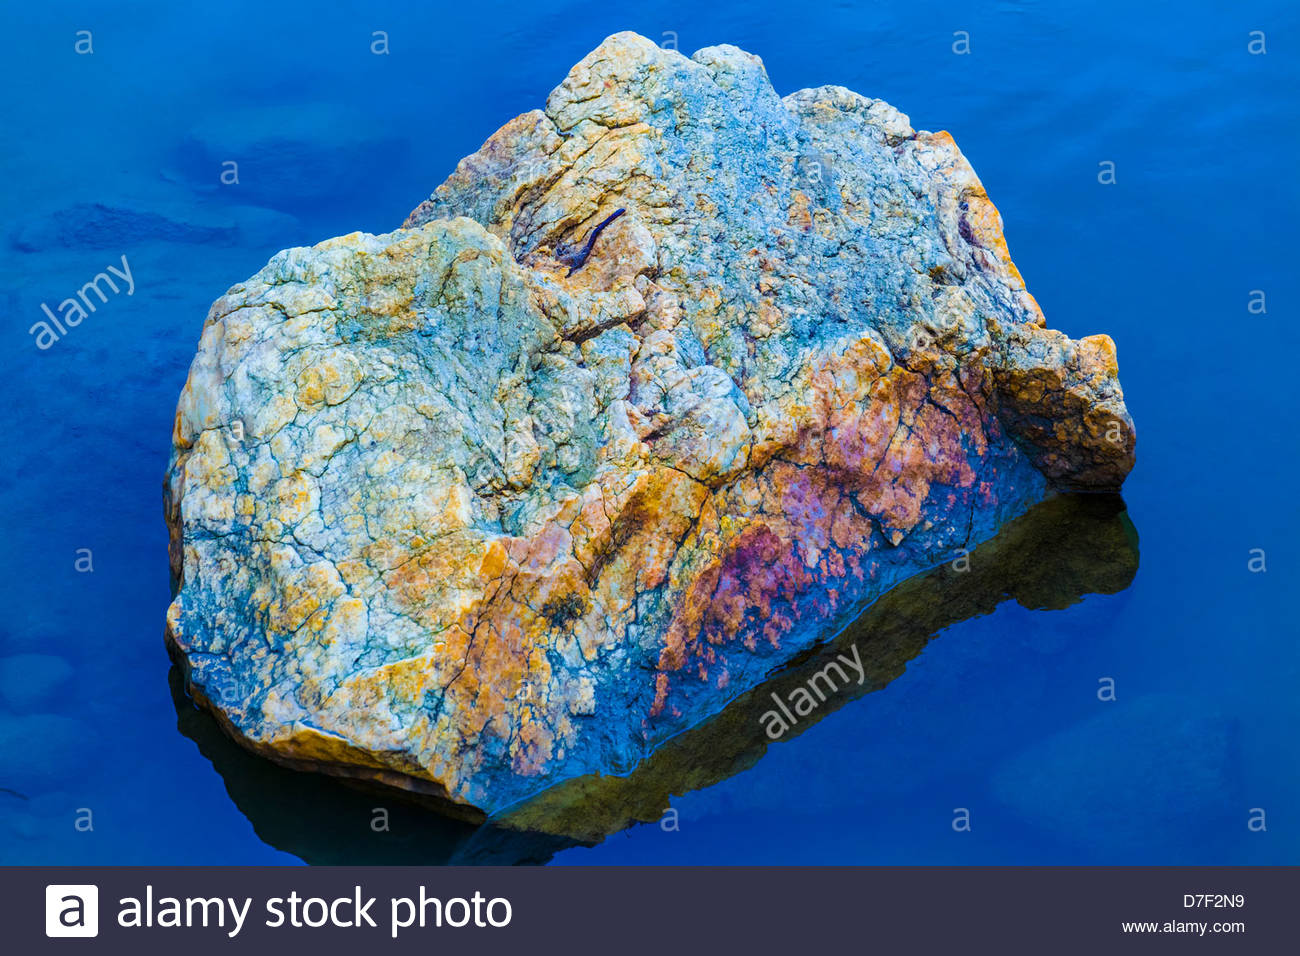 Photo of a Rock with natural dull colours made more vivid by computer. Located in Highland Creek in Toronto Ontario - Stock Image